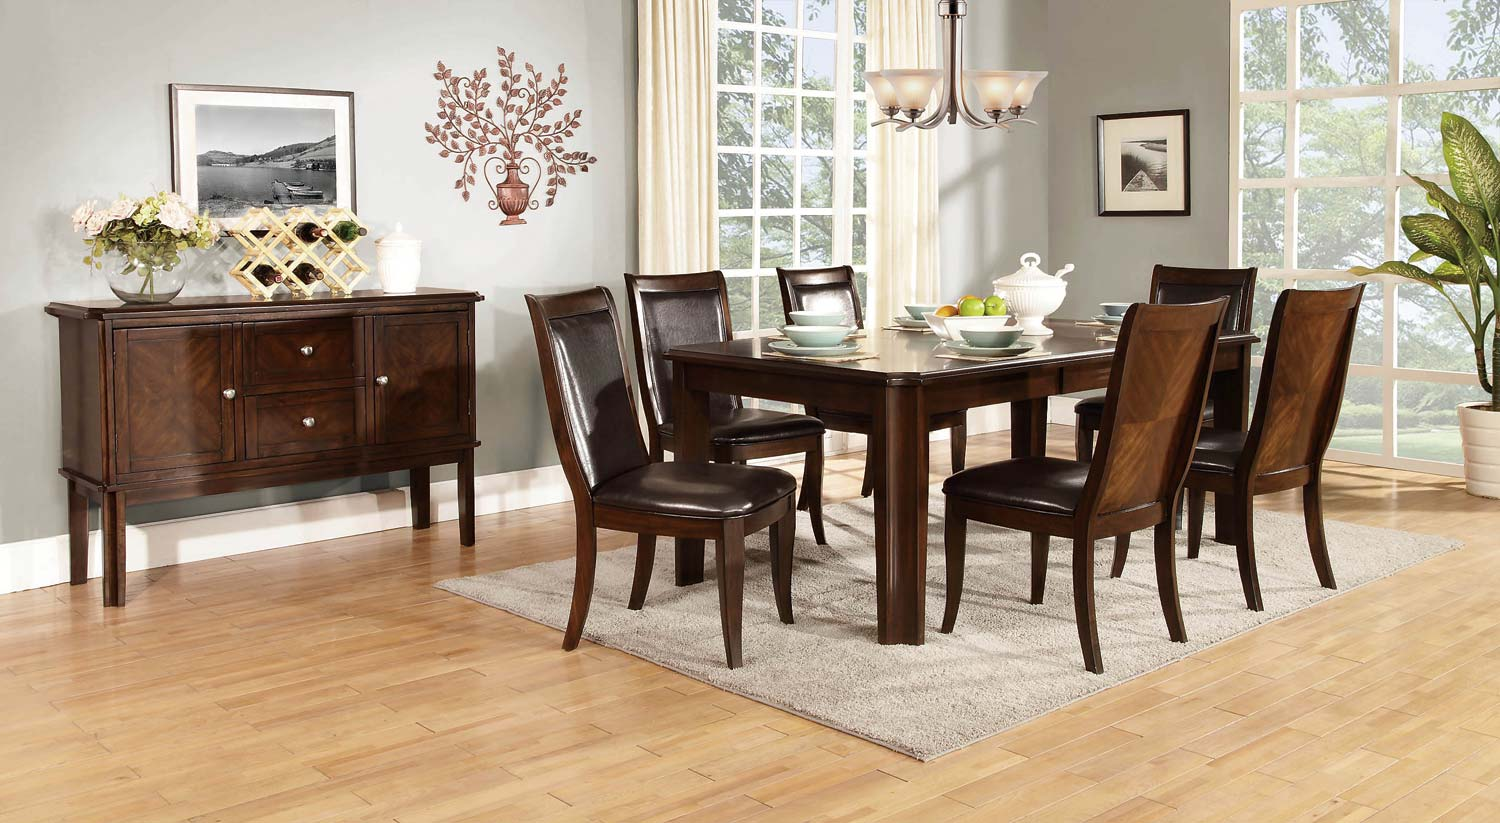 Homelegance Wolfe Dining Set - Medium Brown